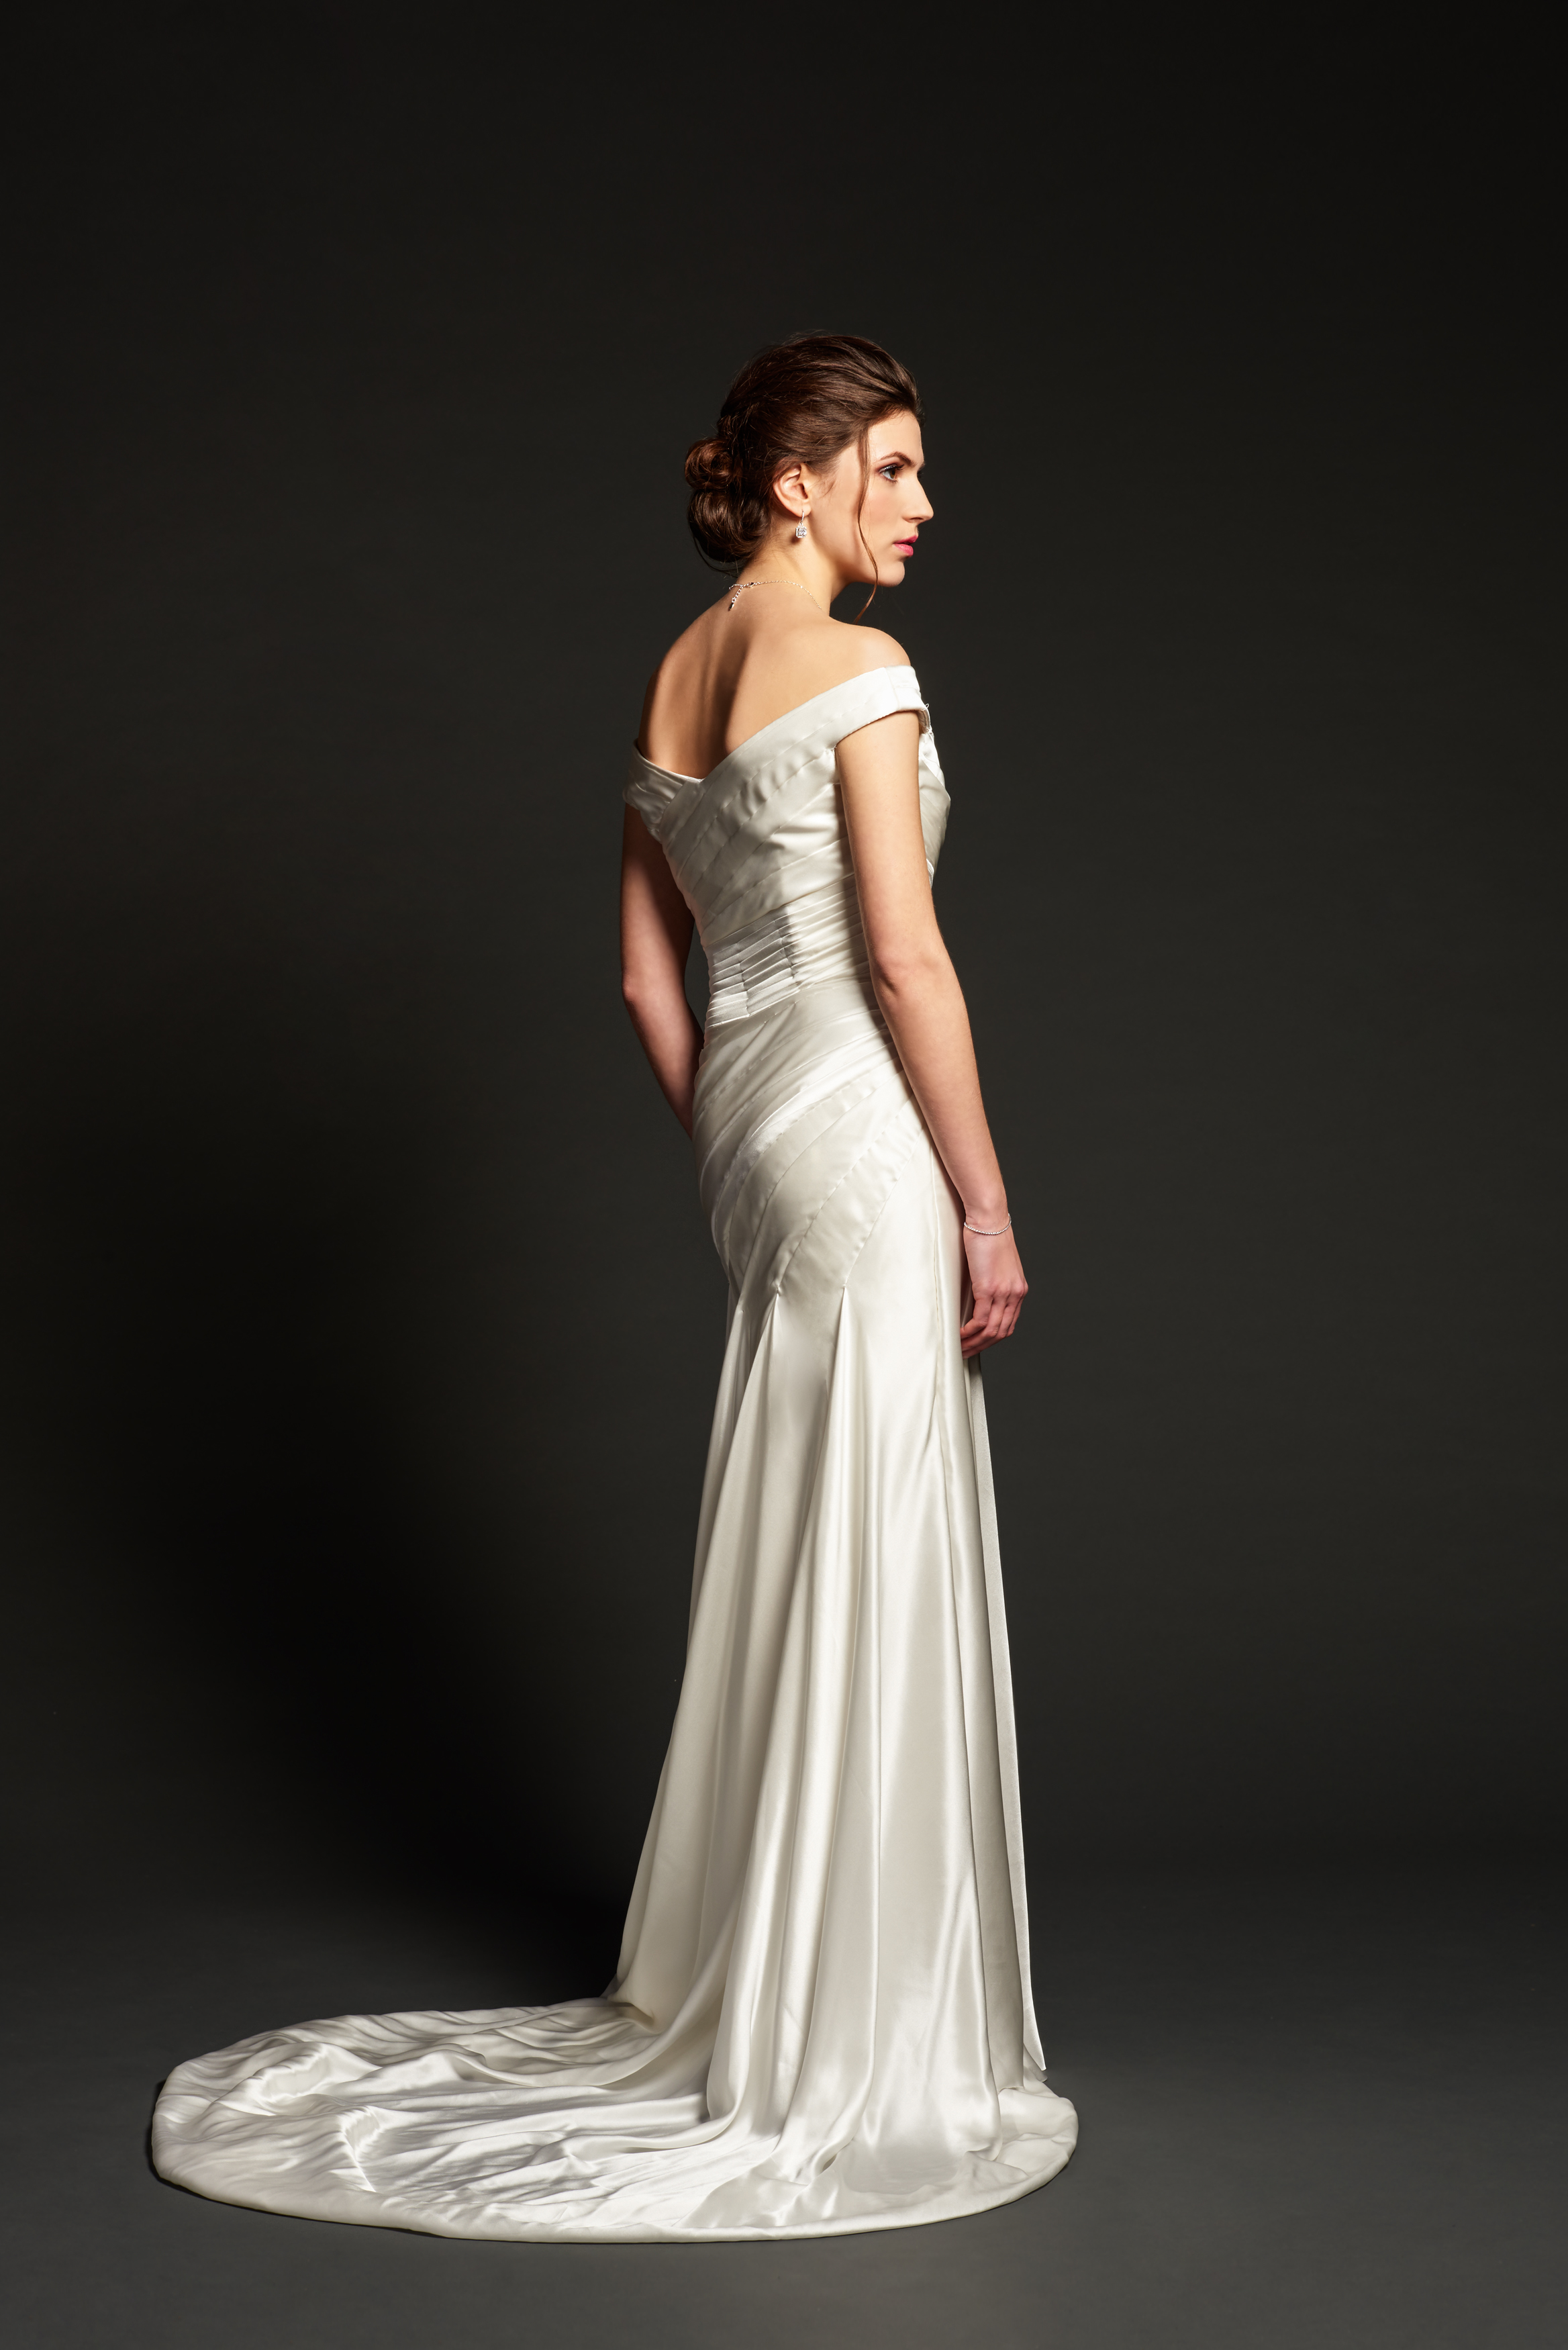 160213_GEMMA LEAKEY BRIDAL - DRESS 07-02.jpg